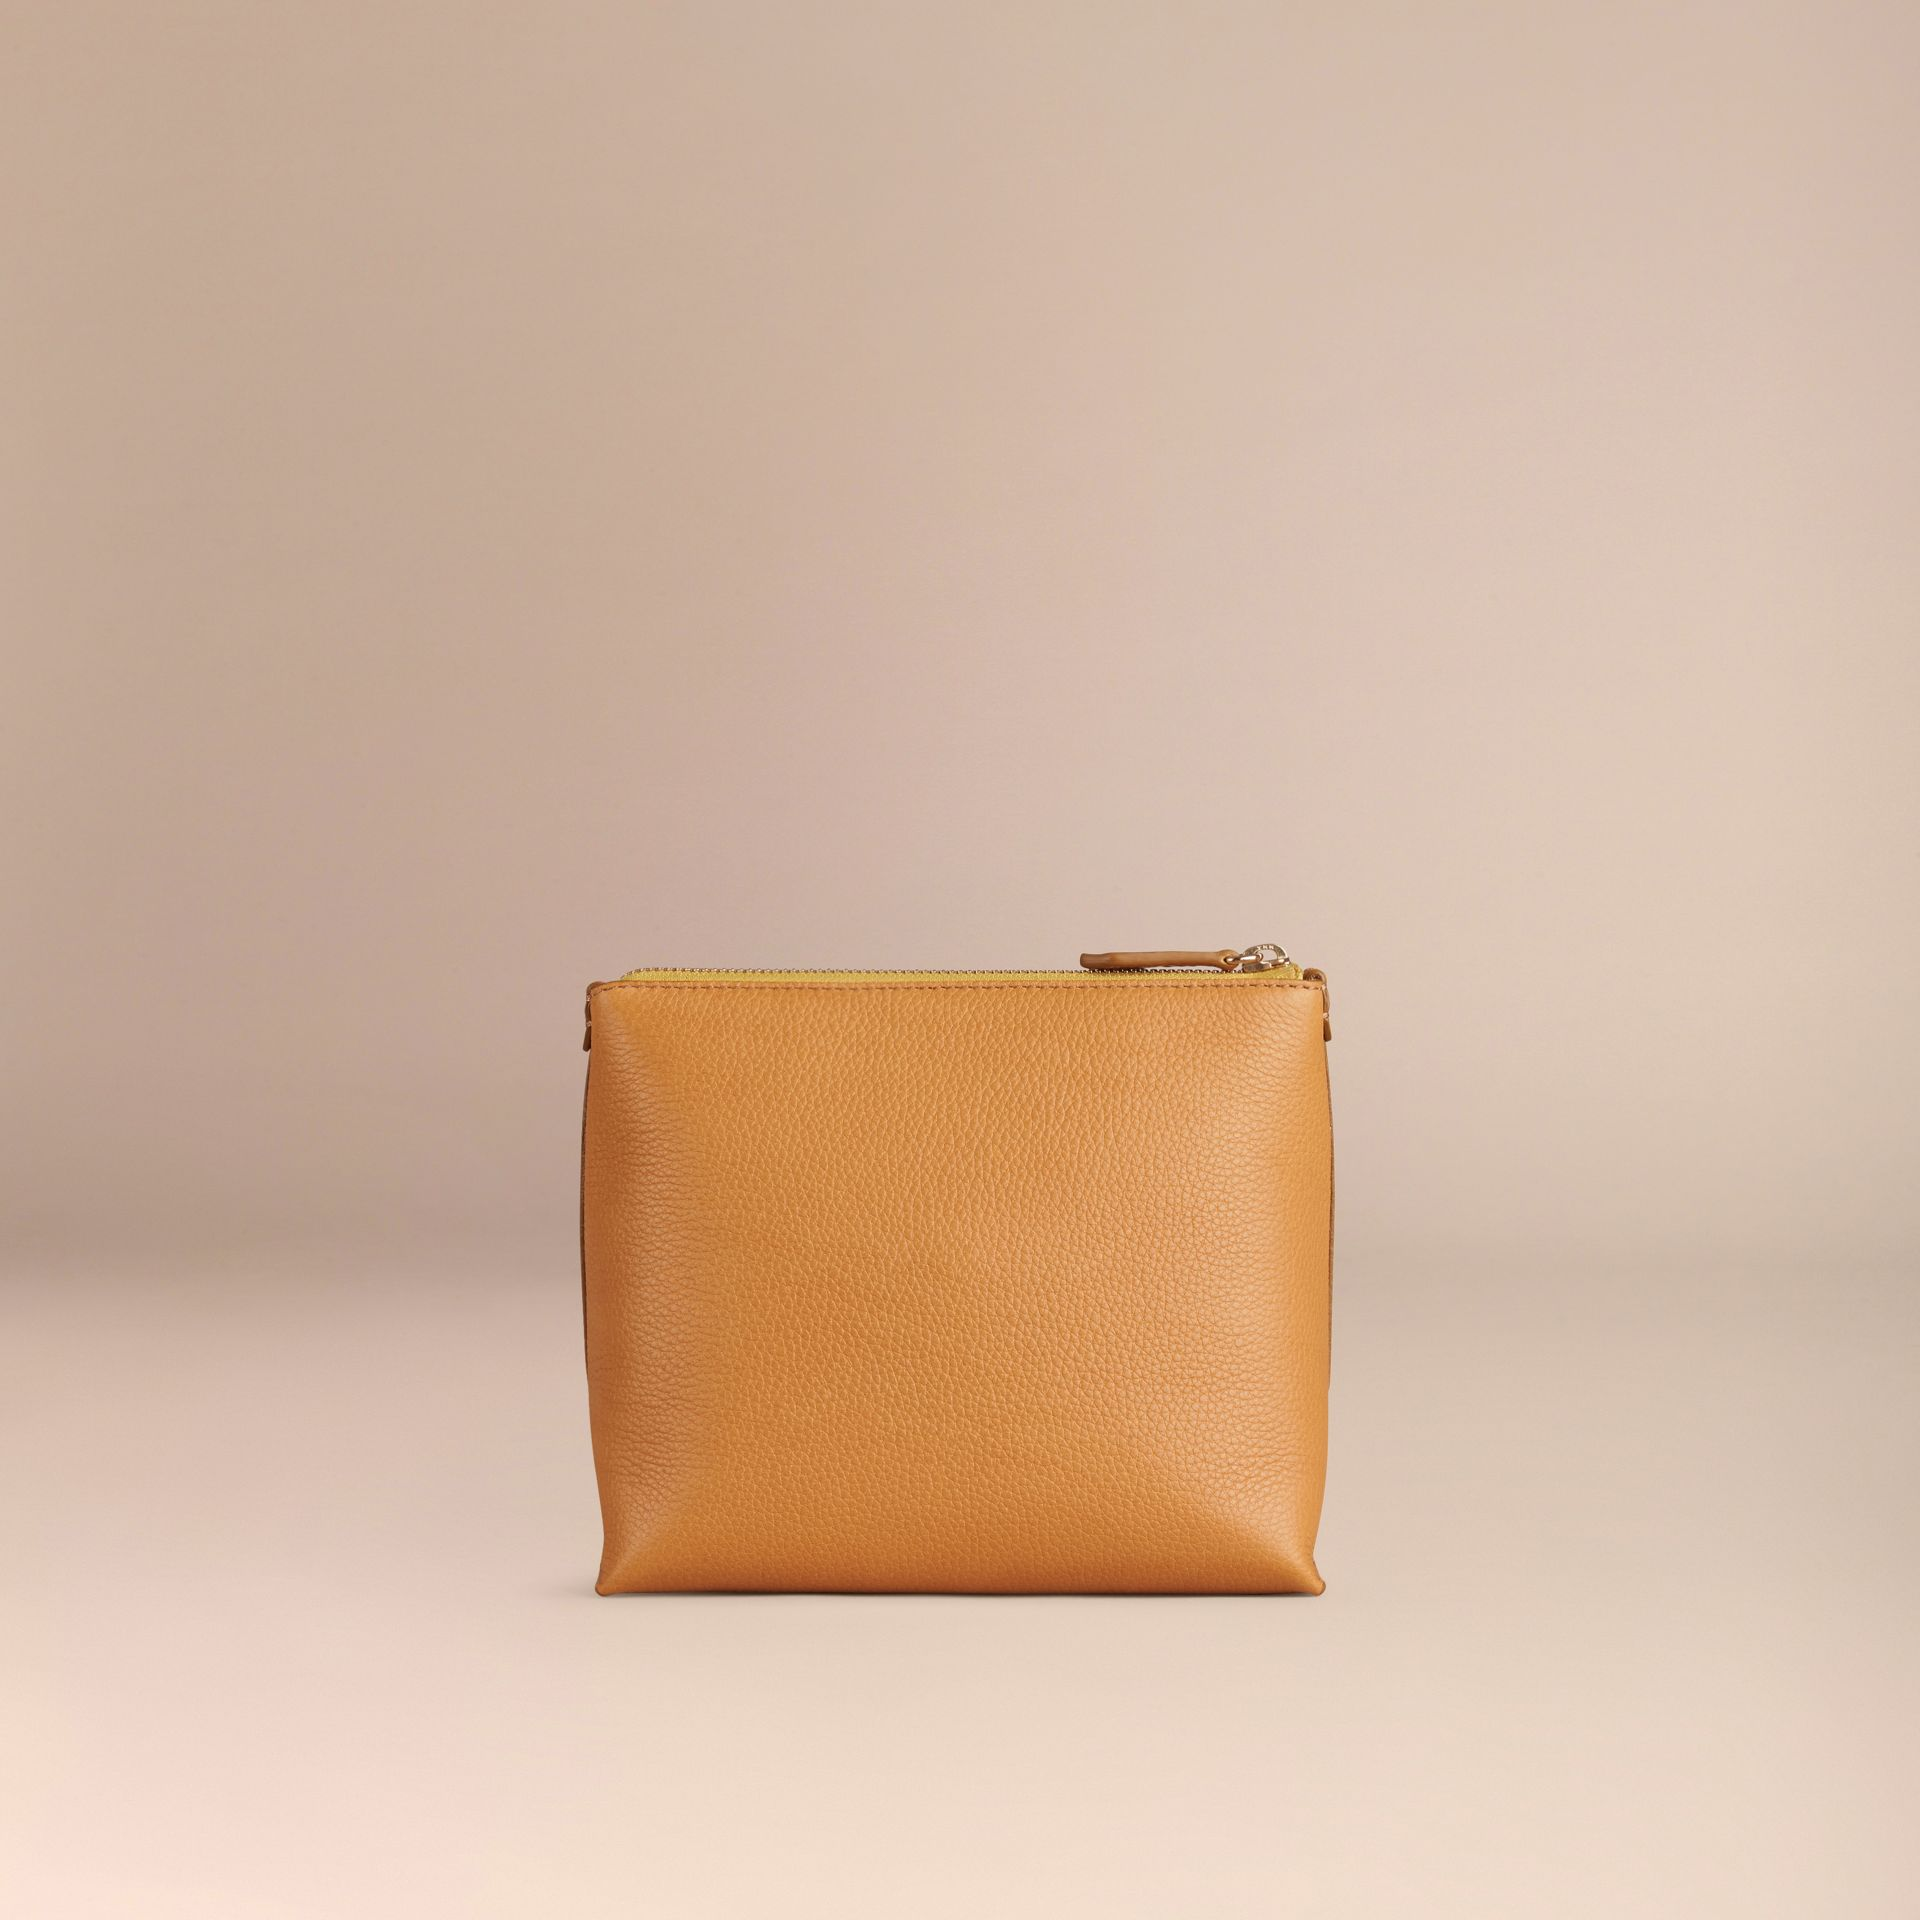 Ochre yellow Grainy Leather Zipped  Pouch Ochre Yellow - gallery image 4